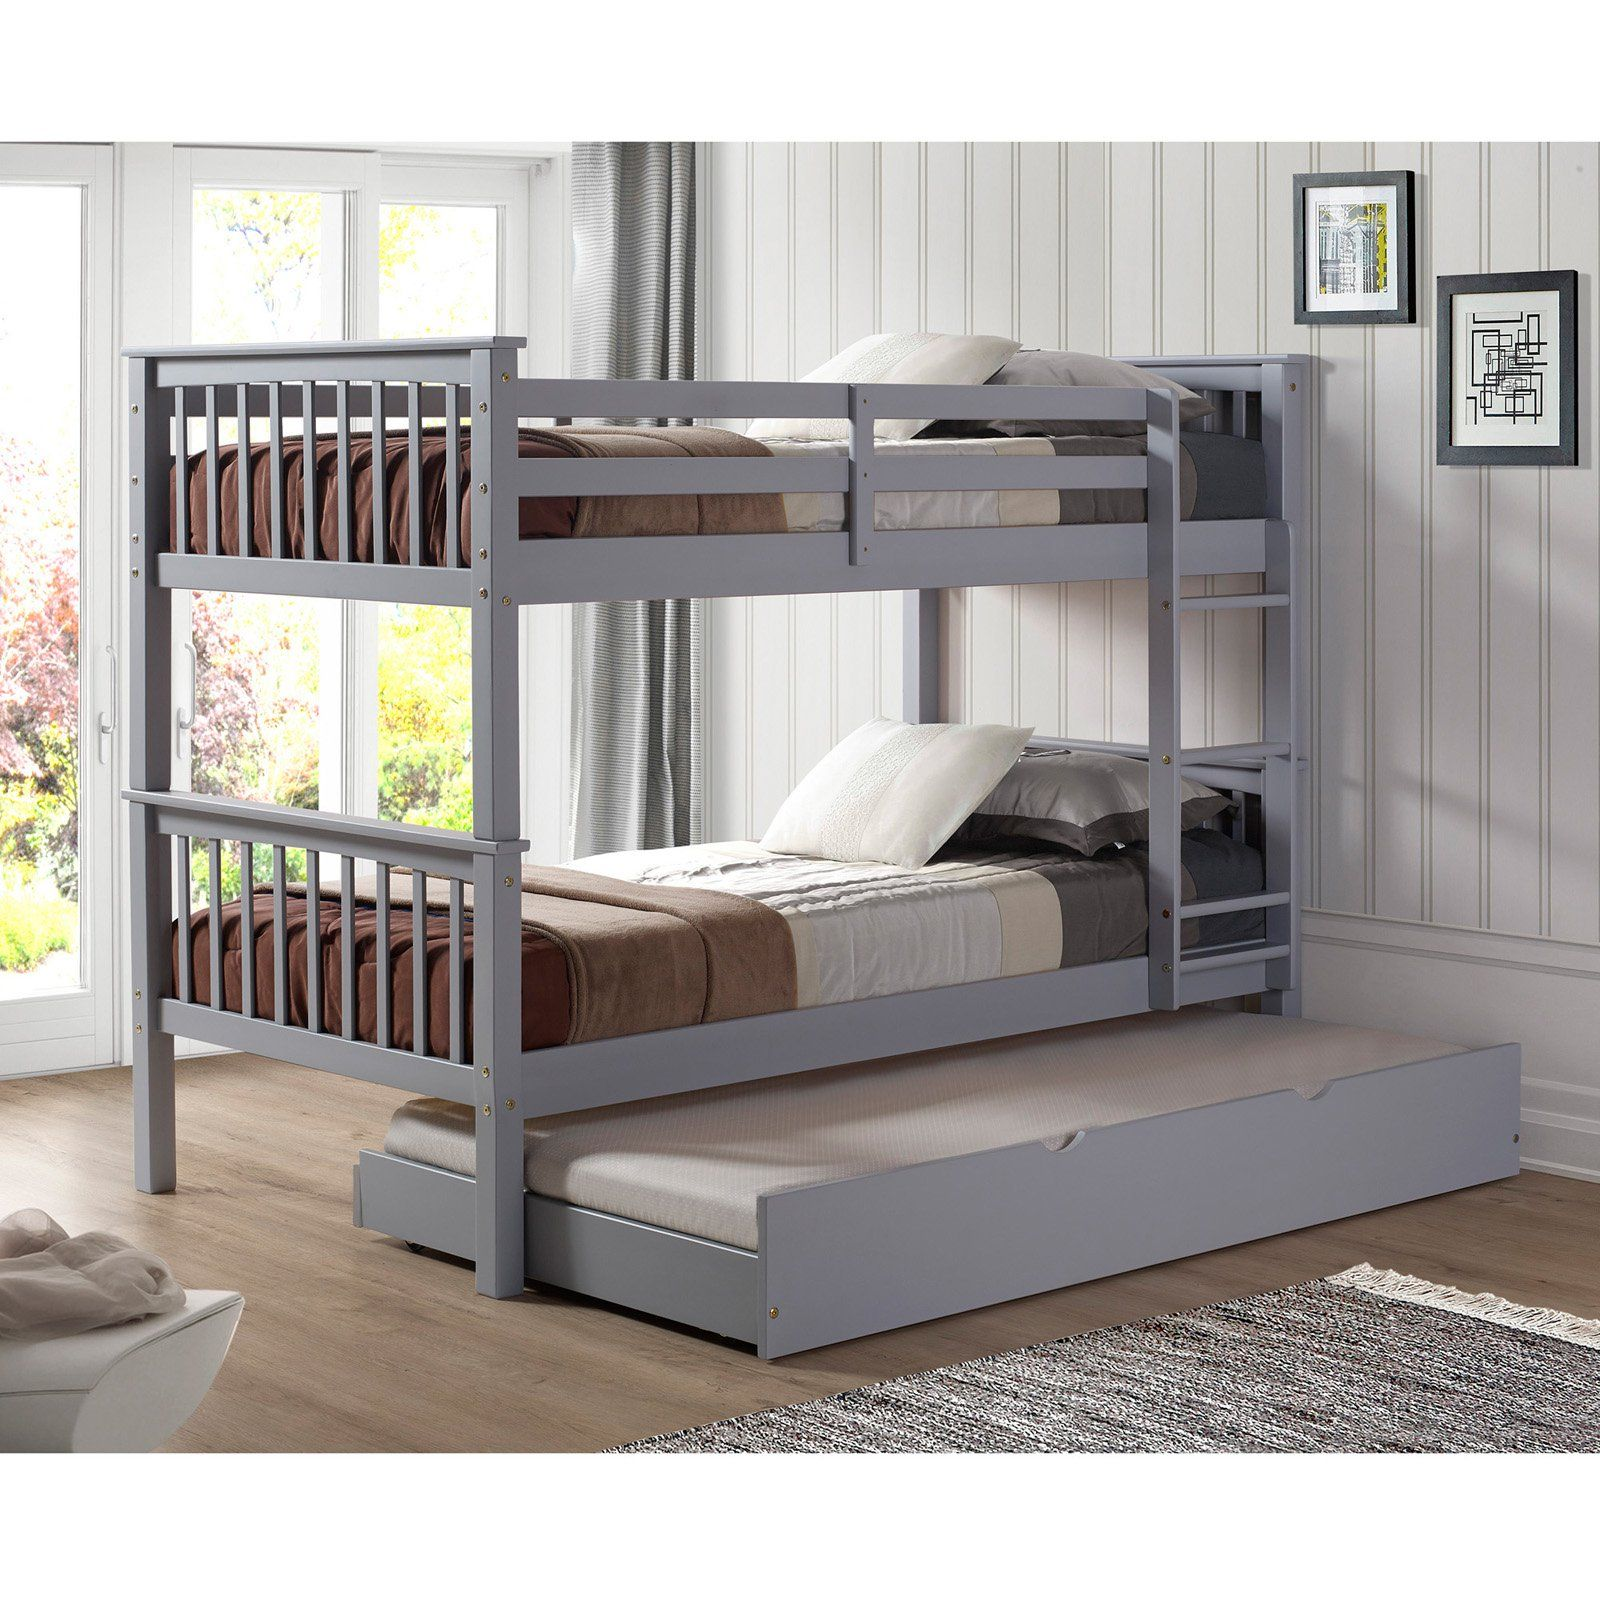 Loft bed twin over queen  Walker Edison Solid Wood Twin over Twin Bunk Bed with Trundle  from